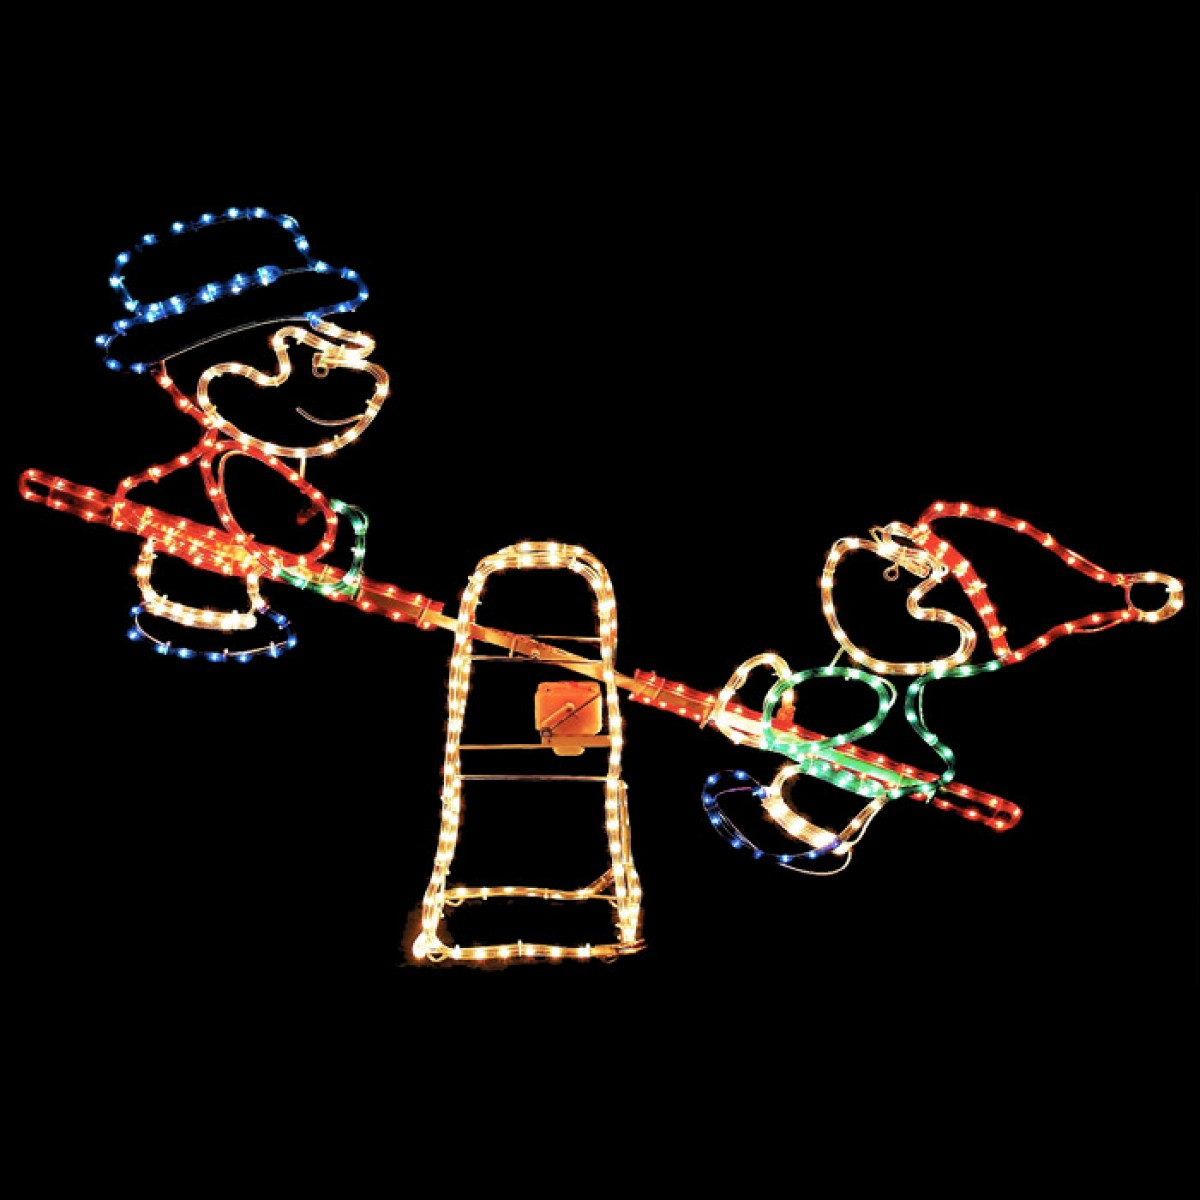 Elves on a SeeSaw Christmas Rope Light Display